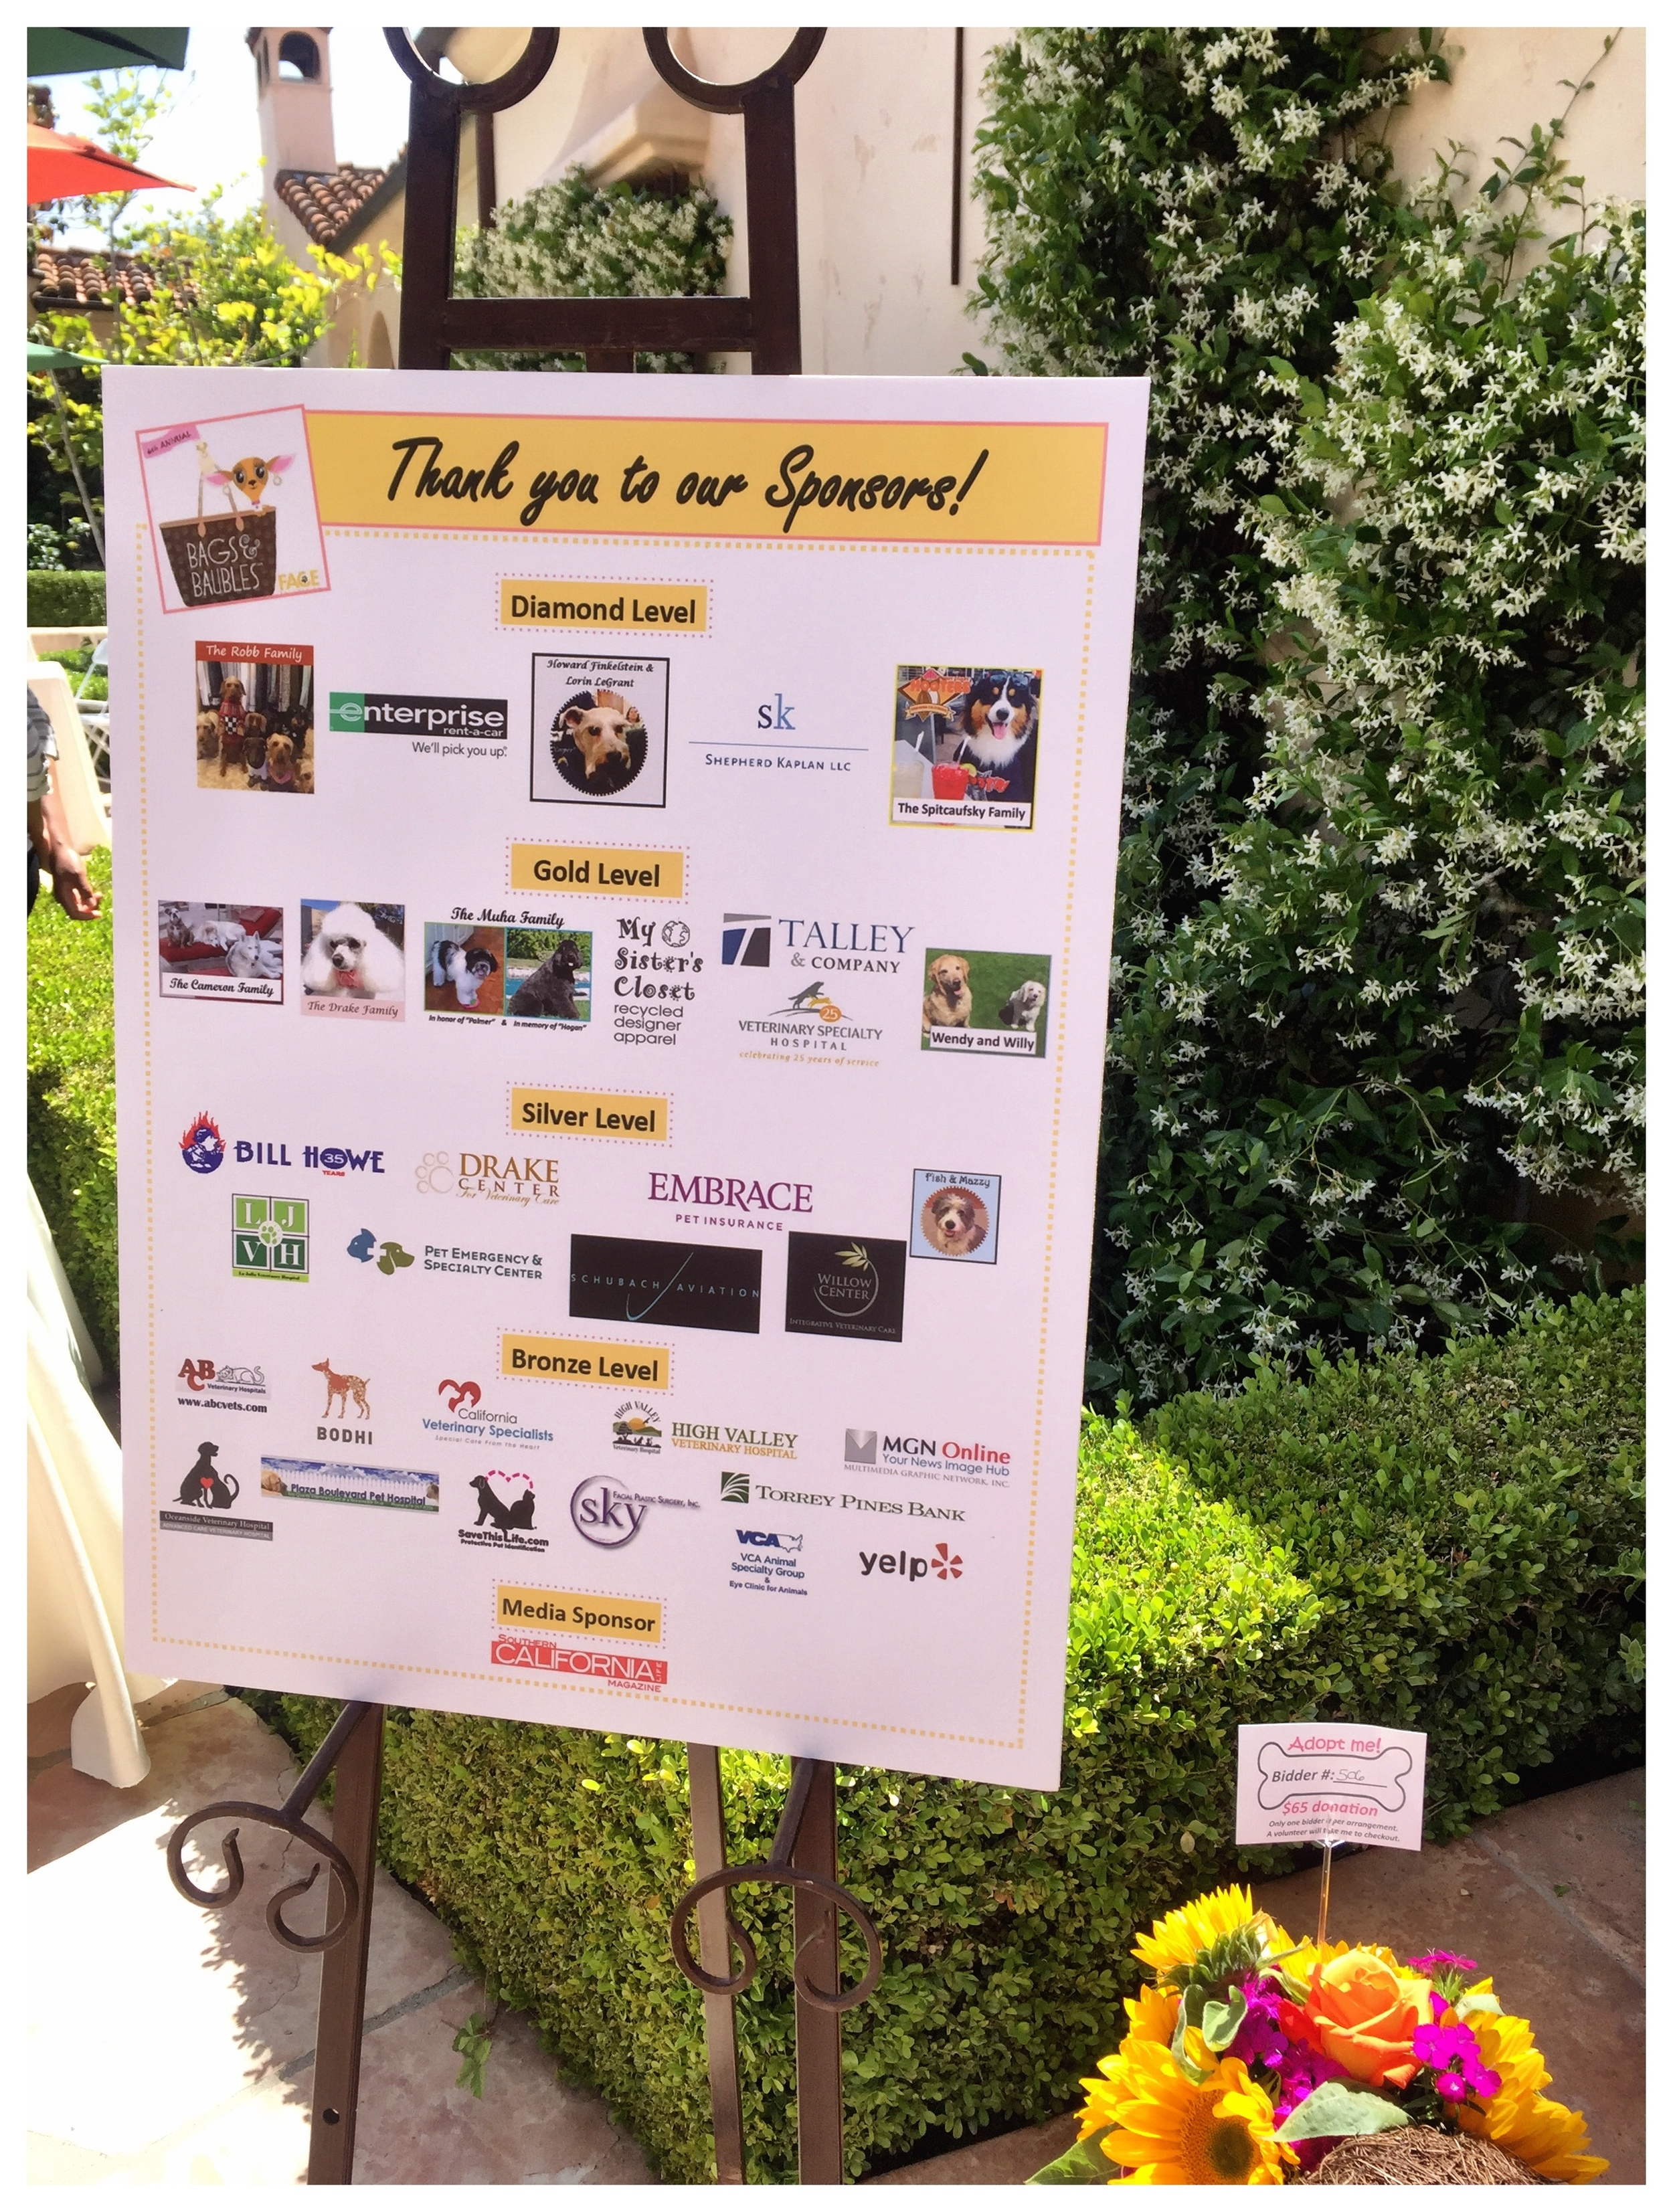 SKY Facial Plastic Surgery is proud to be a sponsor for the FACE Foundation!